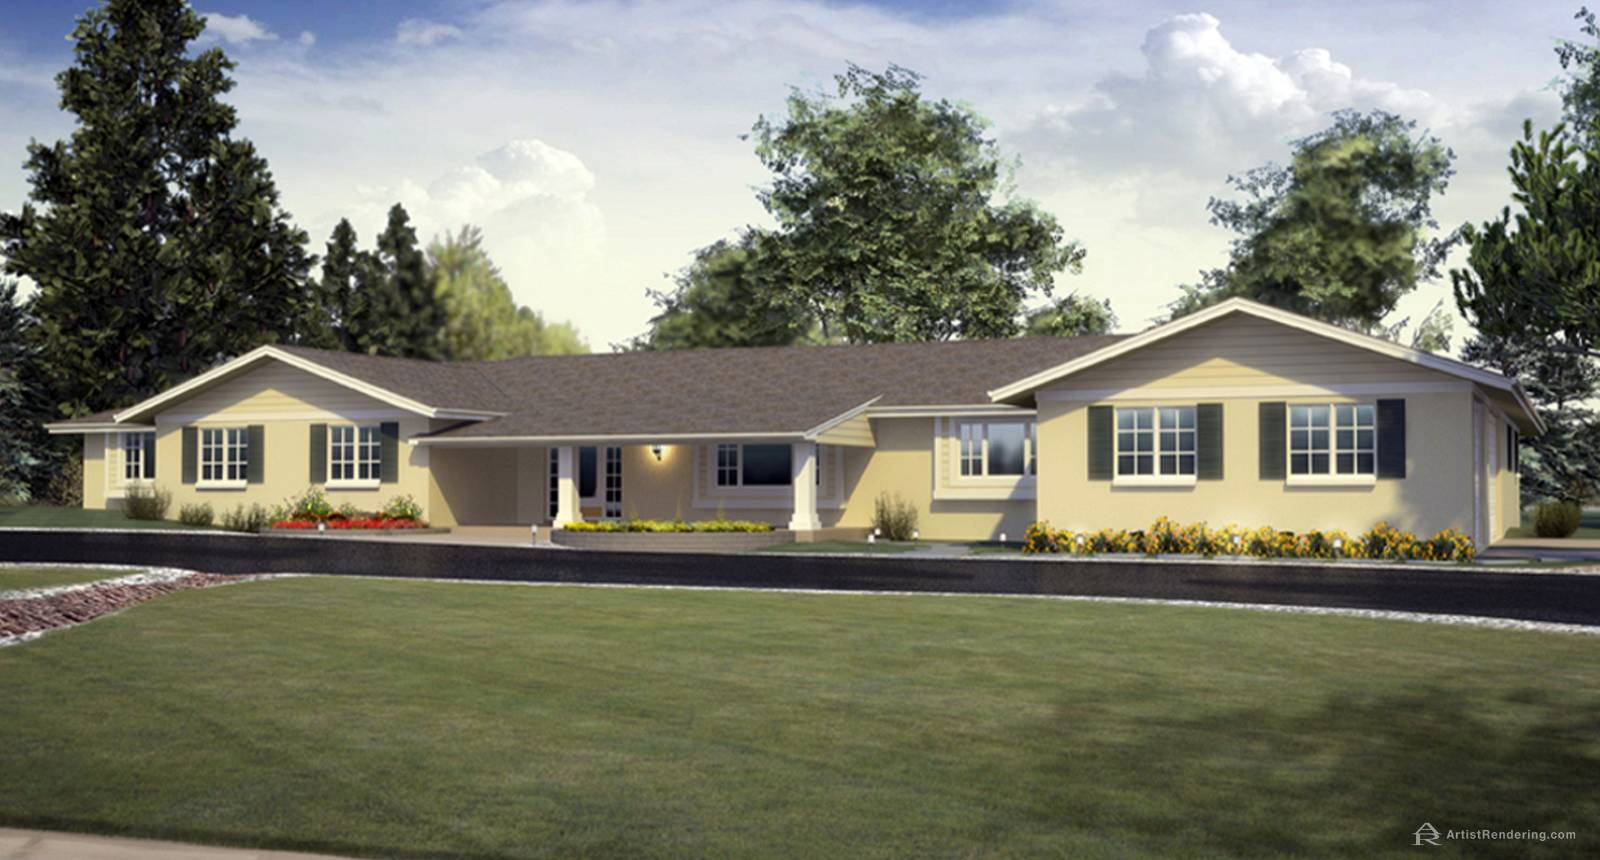 Residential Perspective Renderings